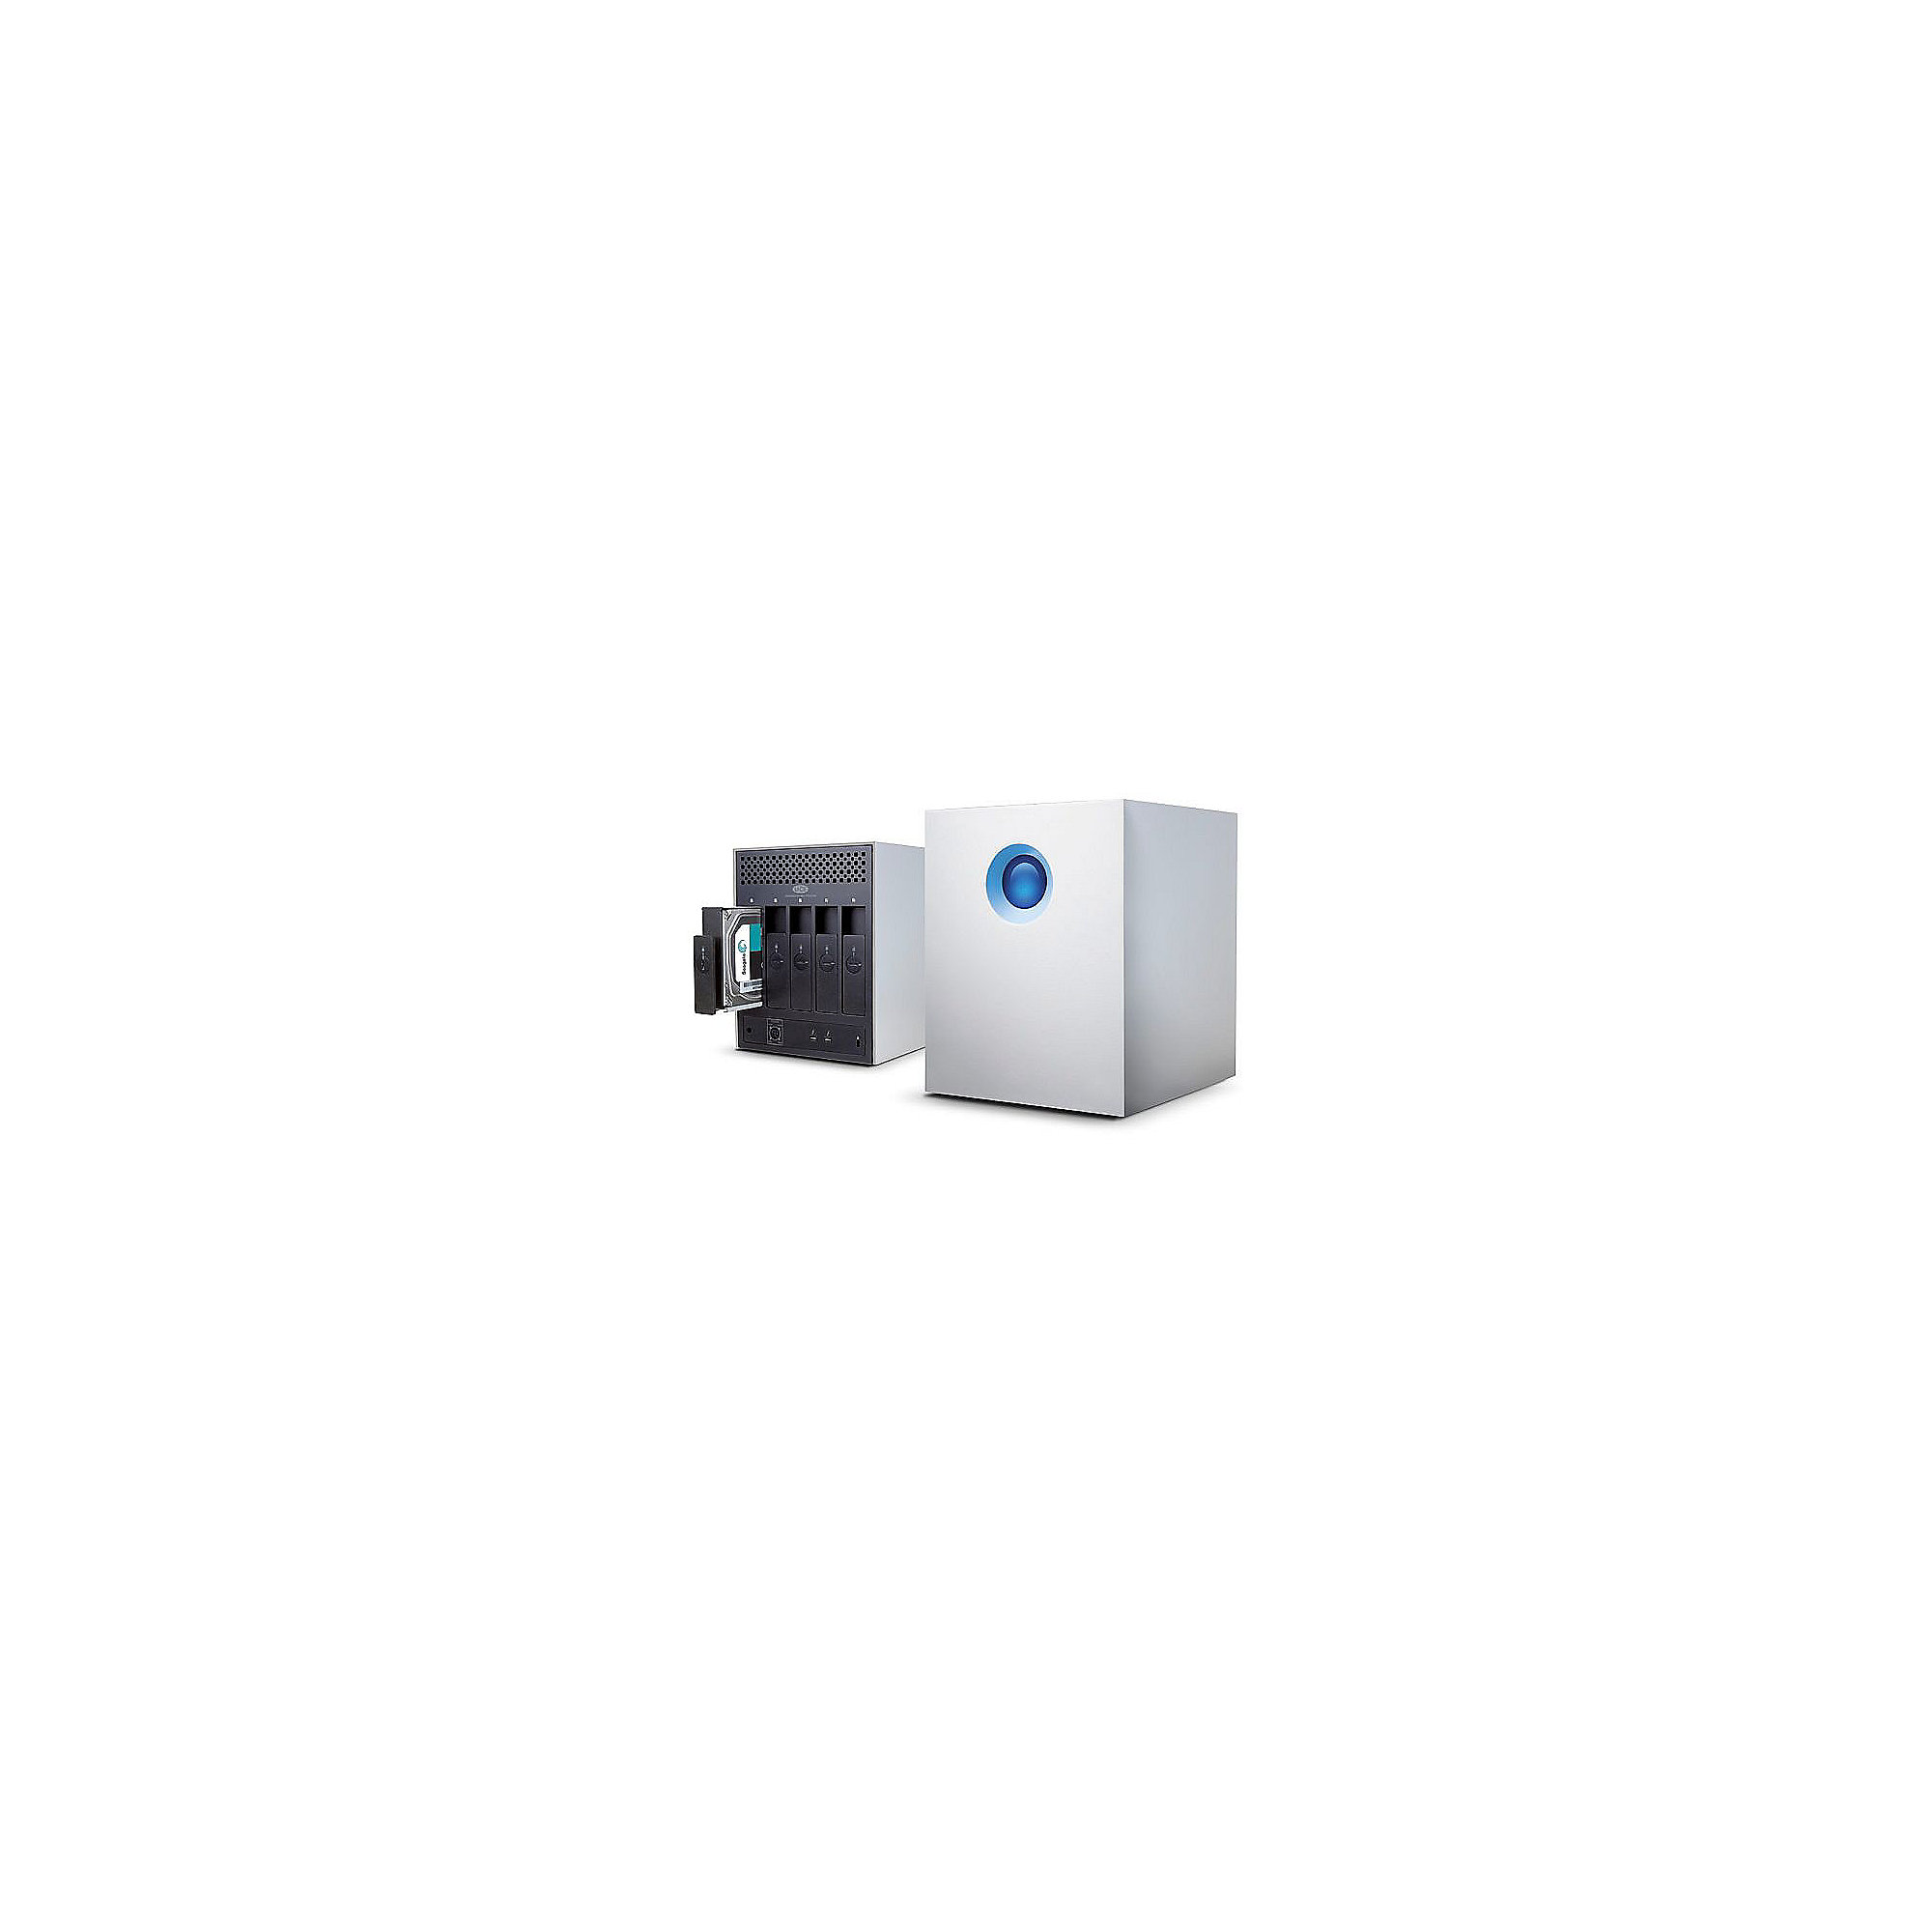 LaCie 5big Thunderbolt 2 Series 10TB 5-Bay RAID 7200RPM